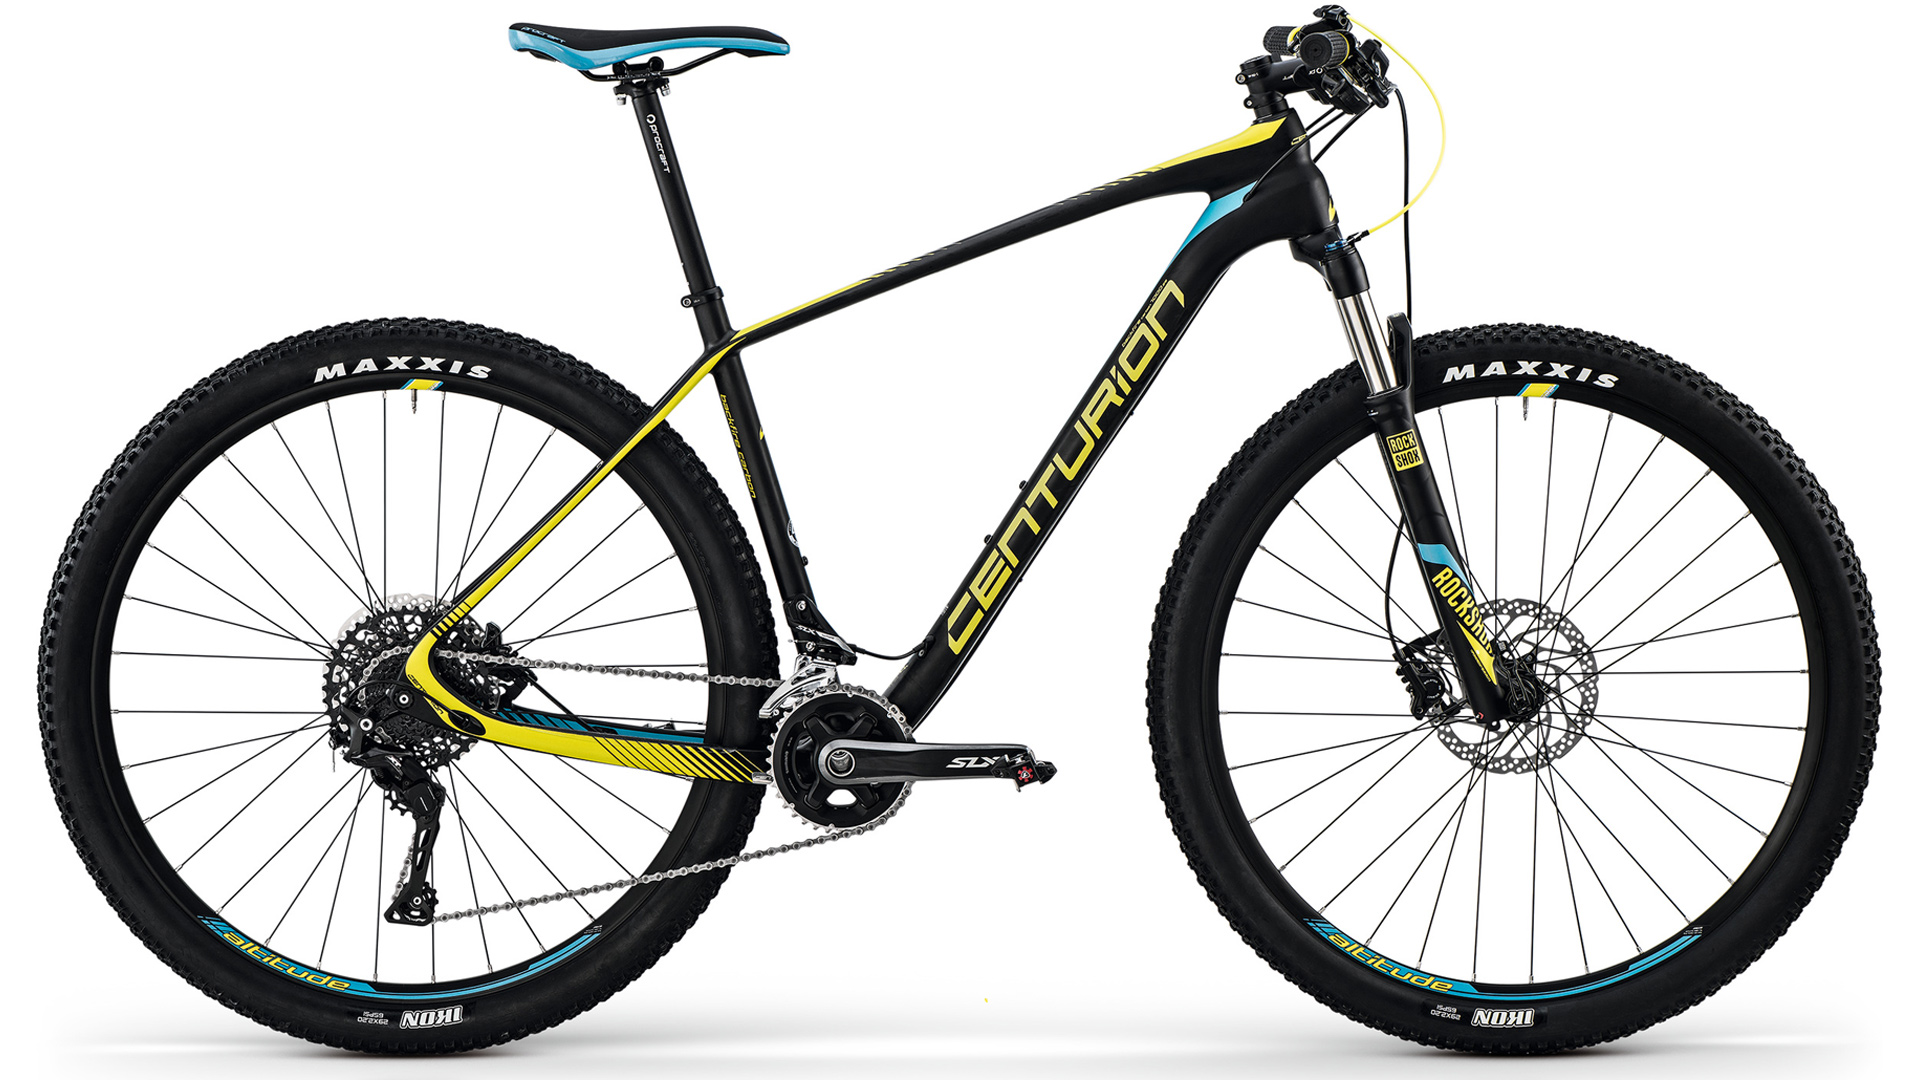 Campana Radsport – Centurion Backfire Carbon 1000